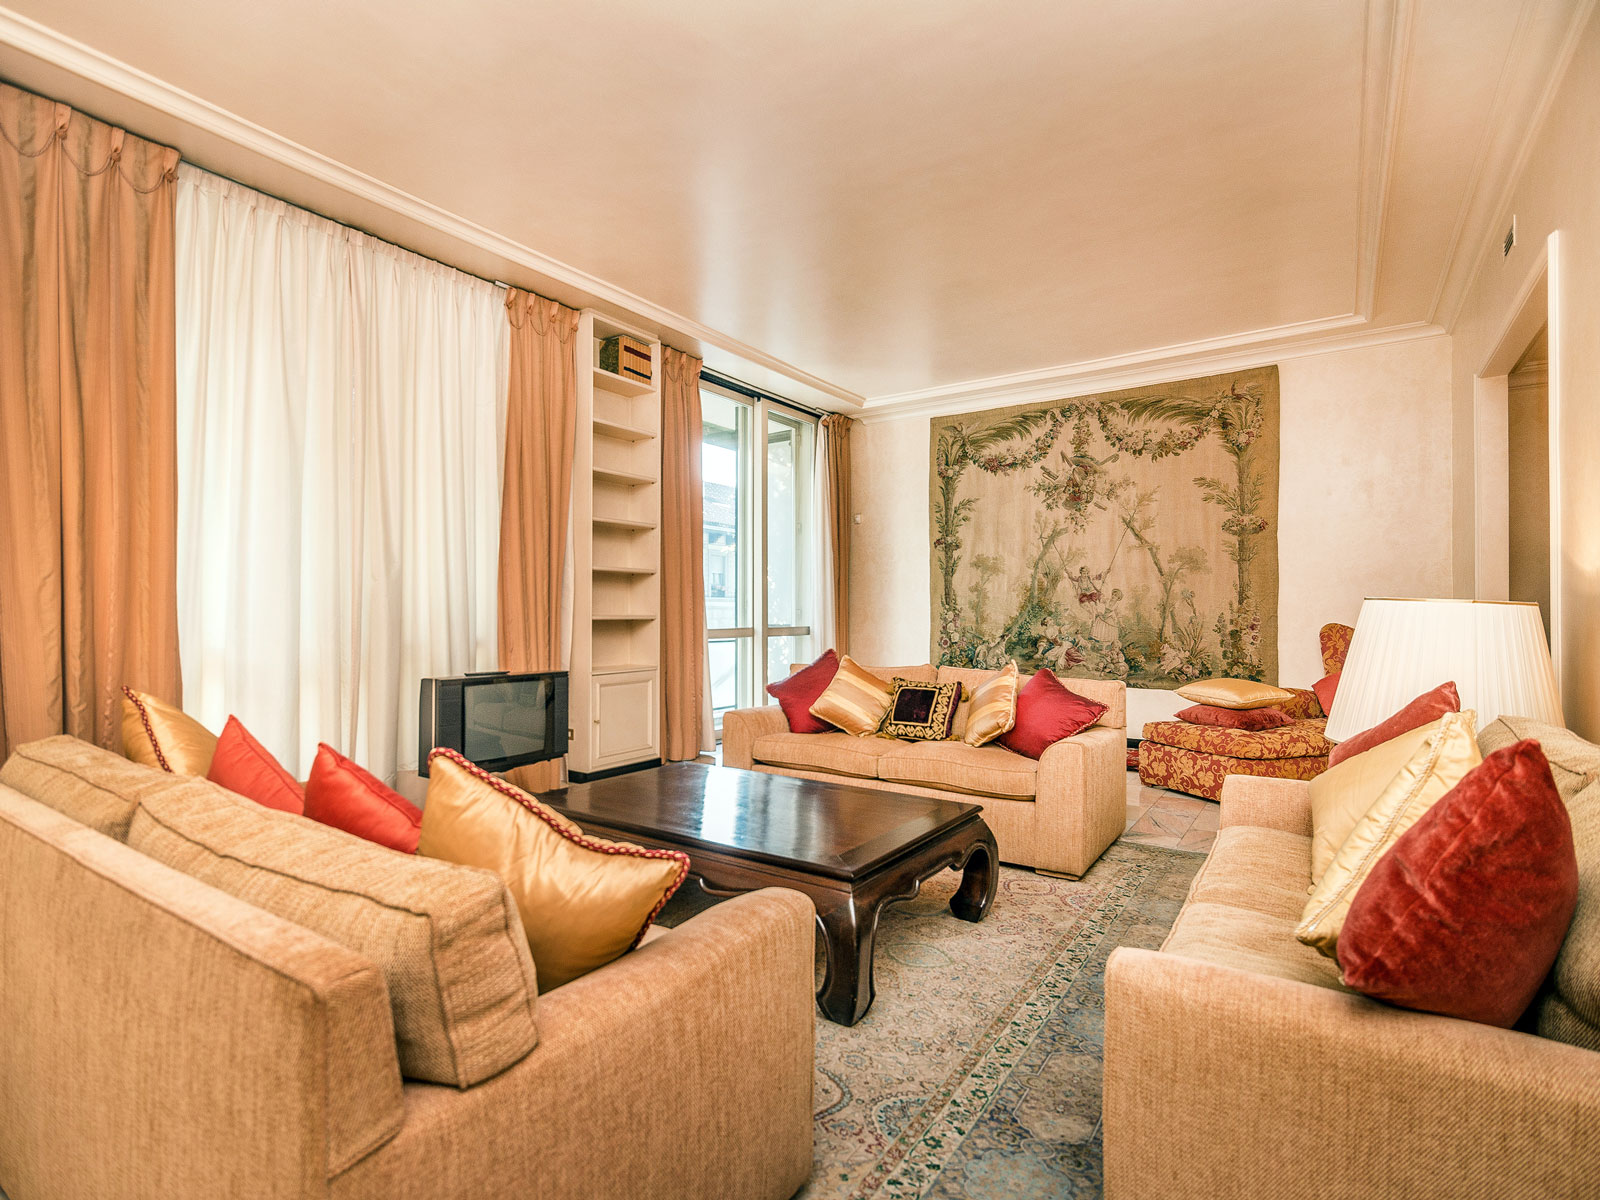 Property For Sale at Elegant apartment near Piazza San Babila